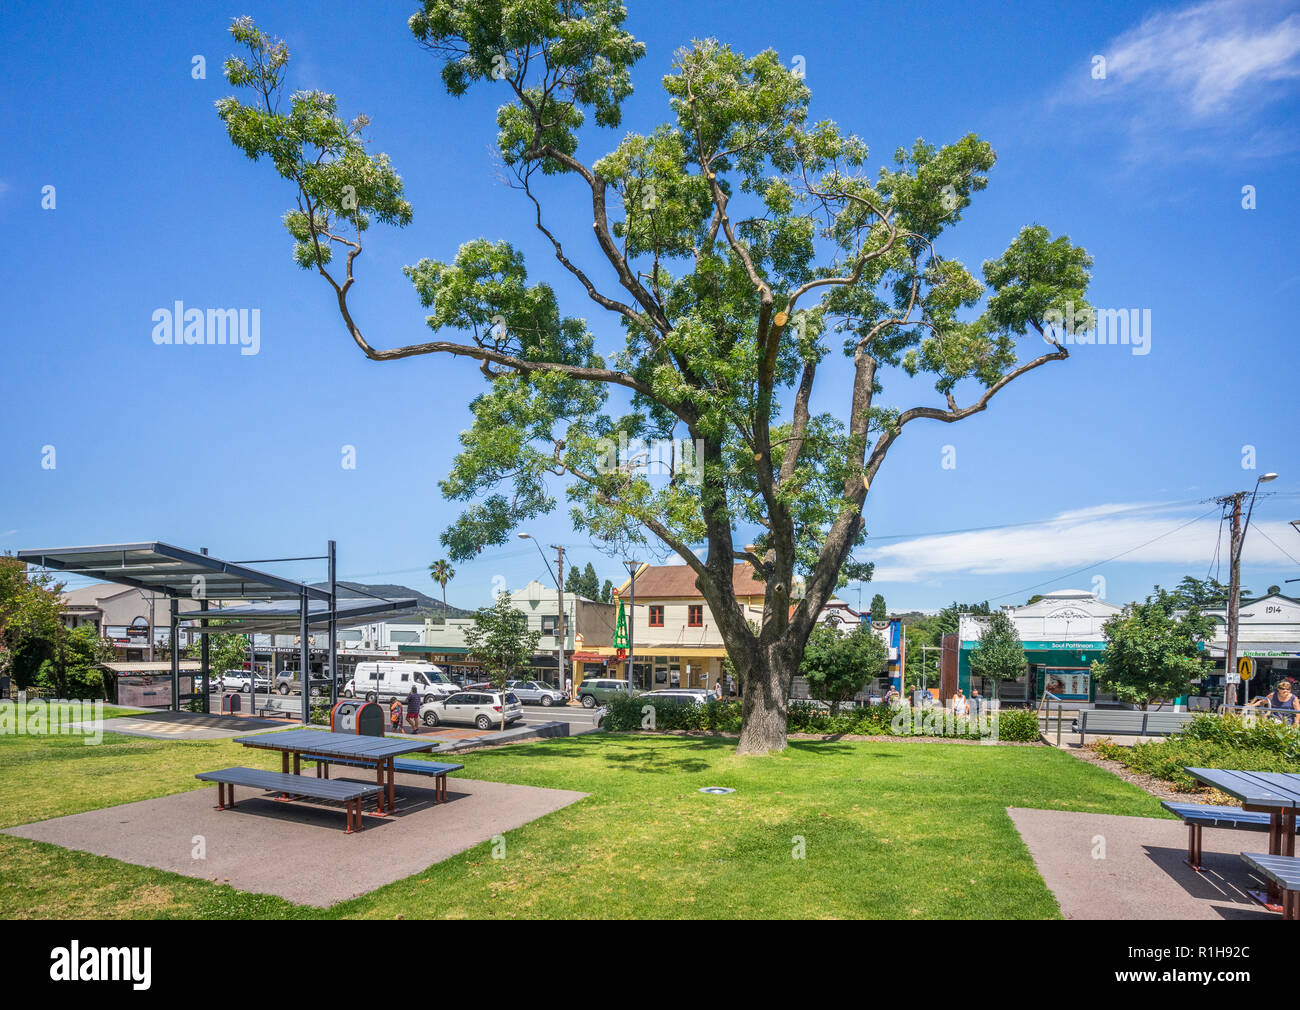 Shire Park at Rouse Street in the New England region country town of Tenterfield, New South Wales, Australia - Stock Image